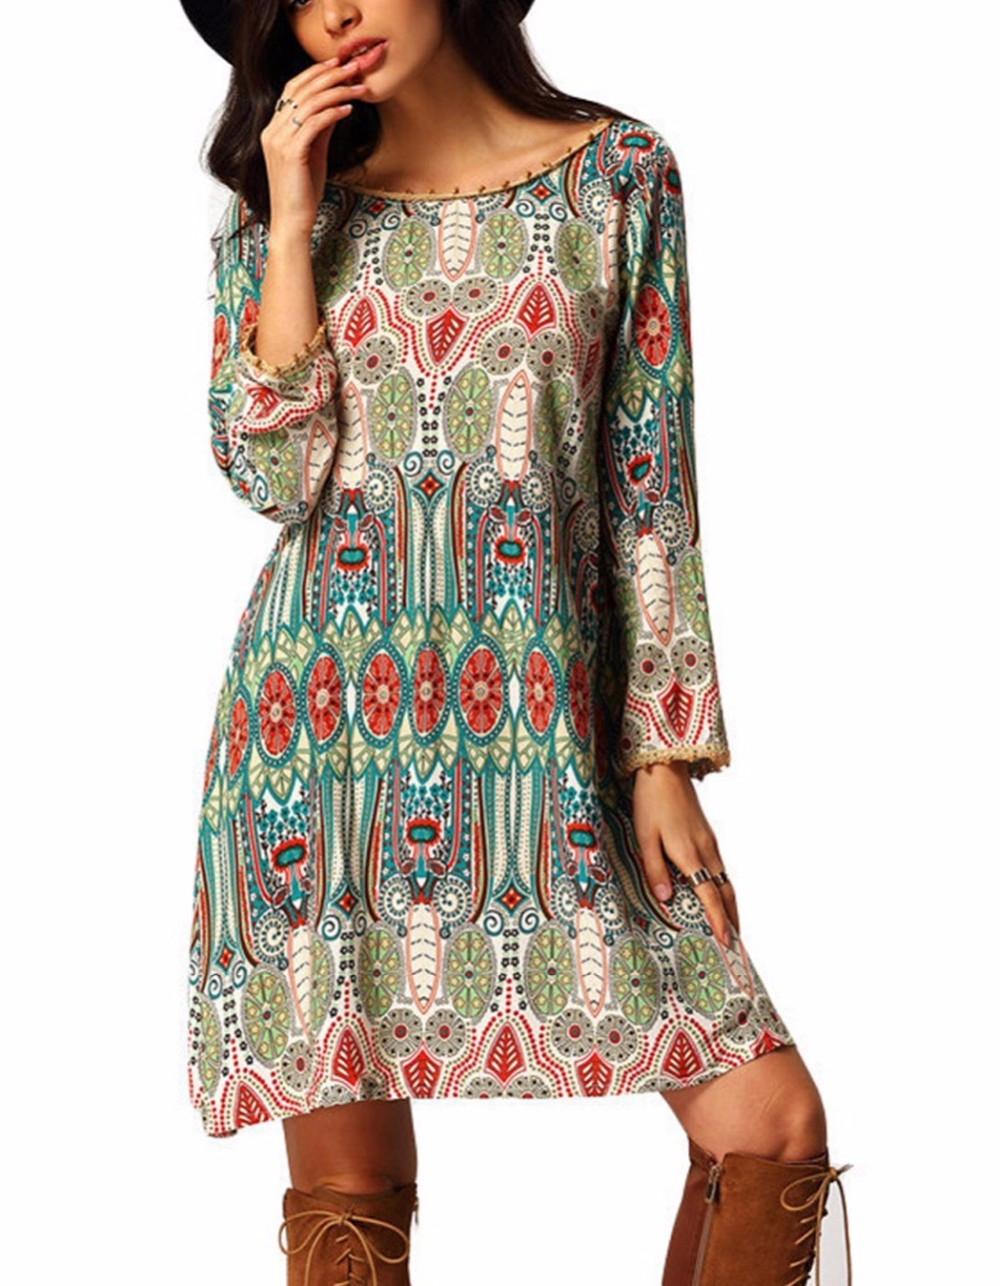 Elegant Sexy Boho Vintage Long Sleeve Women Dress Bohemian Tunic Short Clothing Female Vestidos Vestido De Festa Robe Femme 2016 3